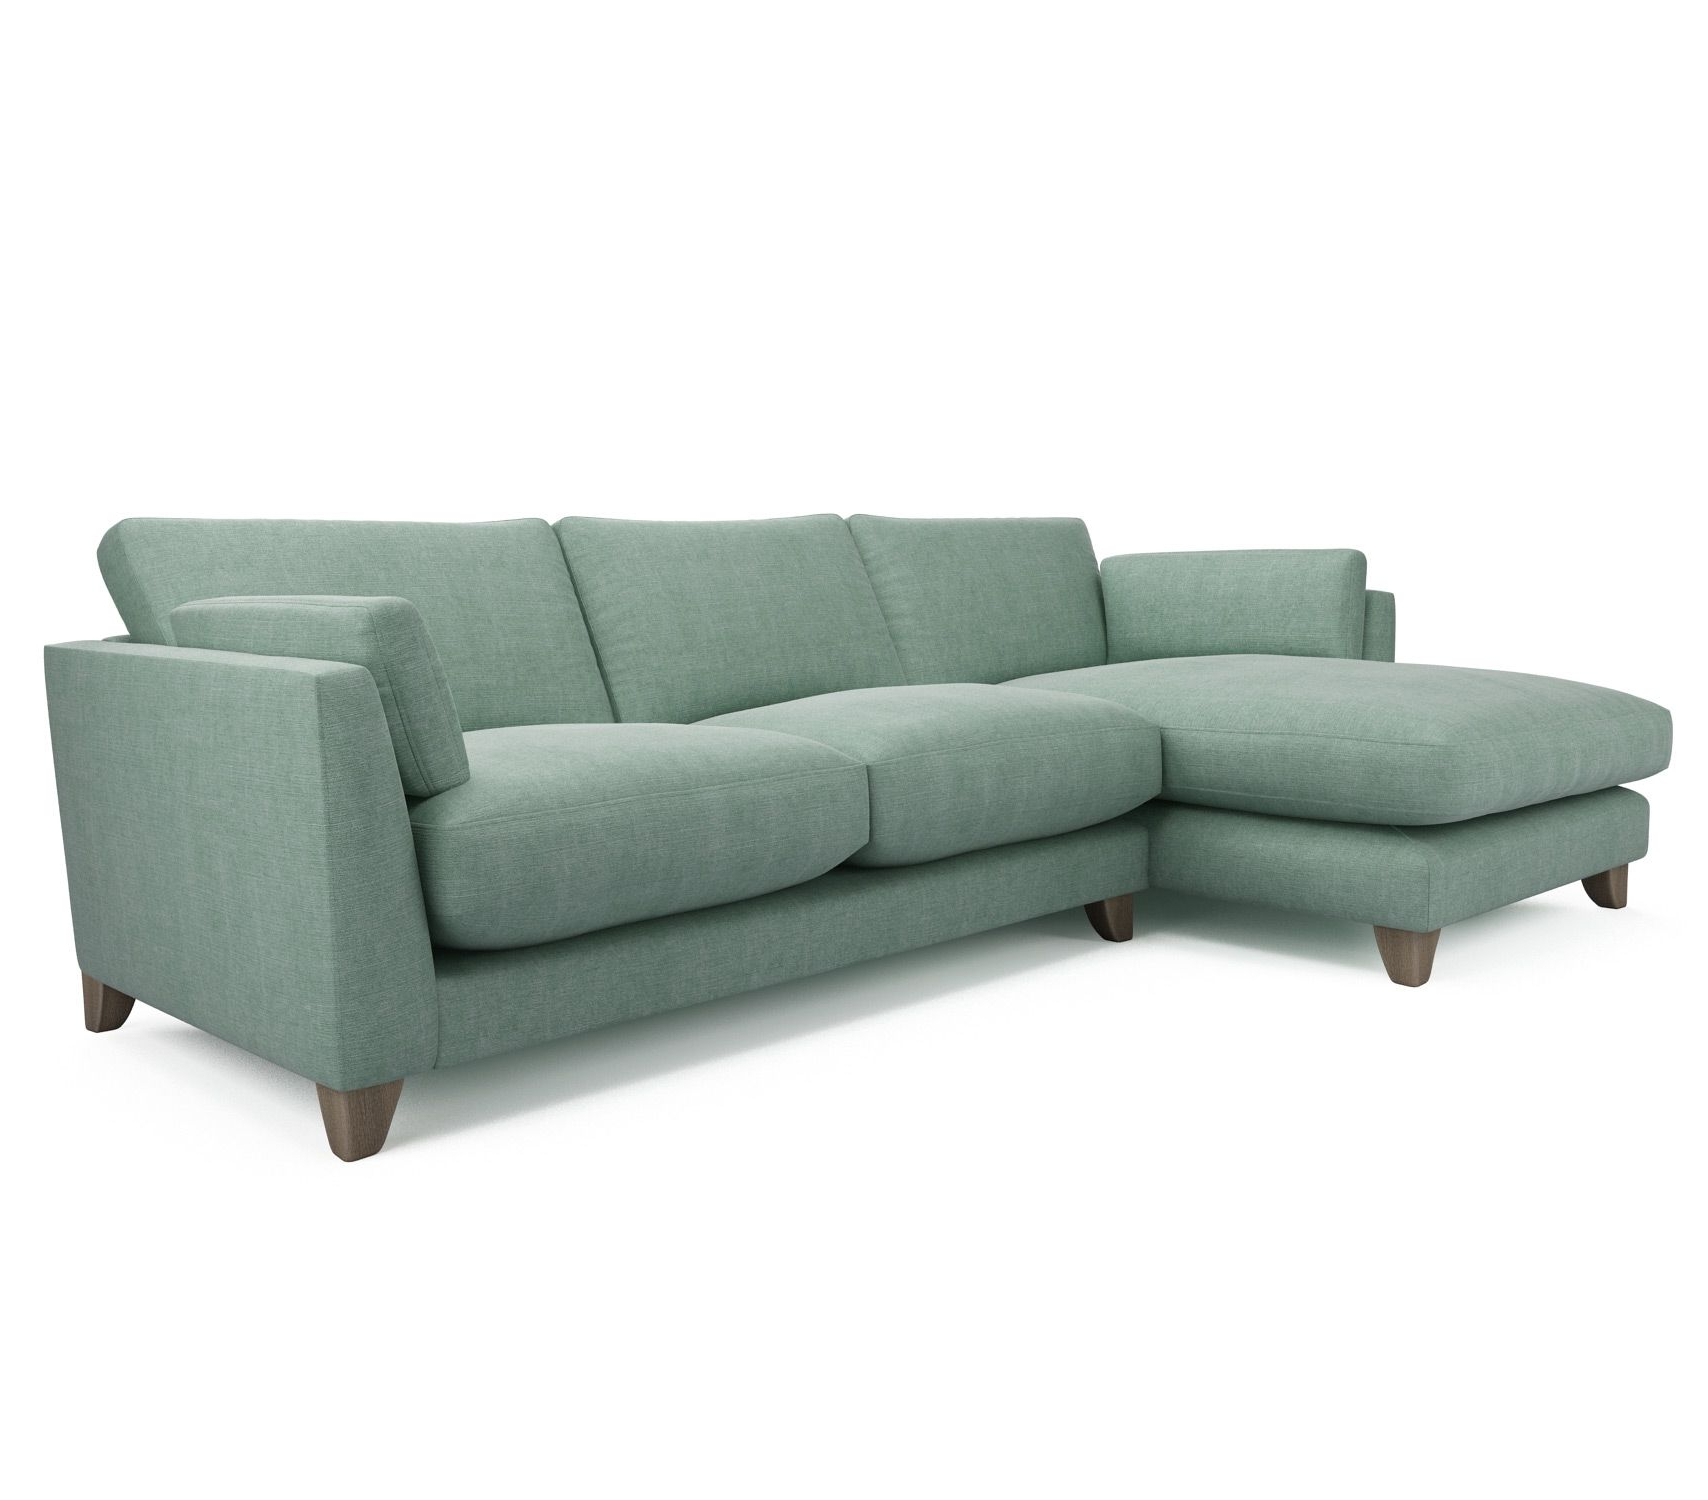 Comfortable Sofa, Sofa, Seat Cushions For Popular Paloma Sofas With Cushions (View 10 of 25)